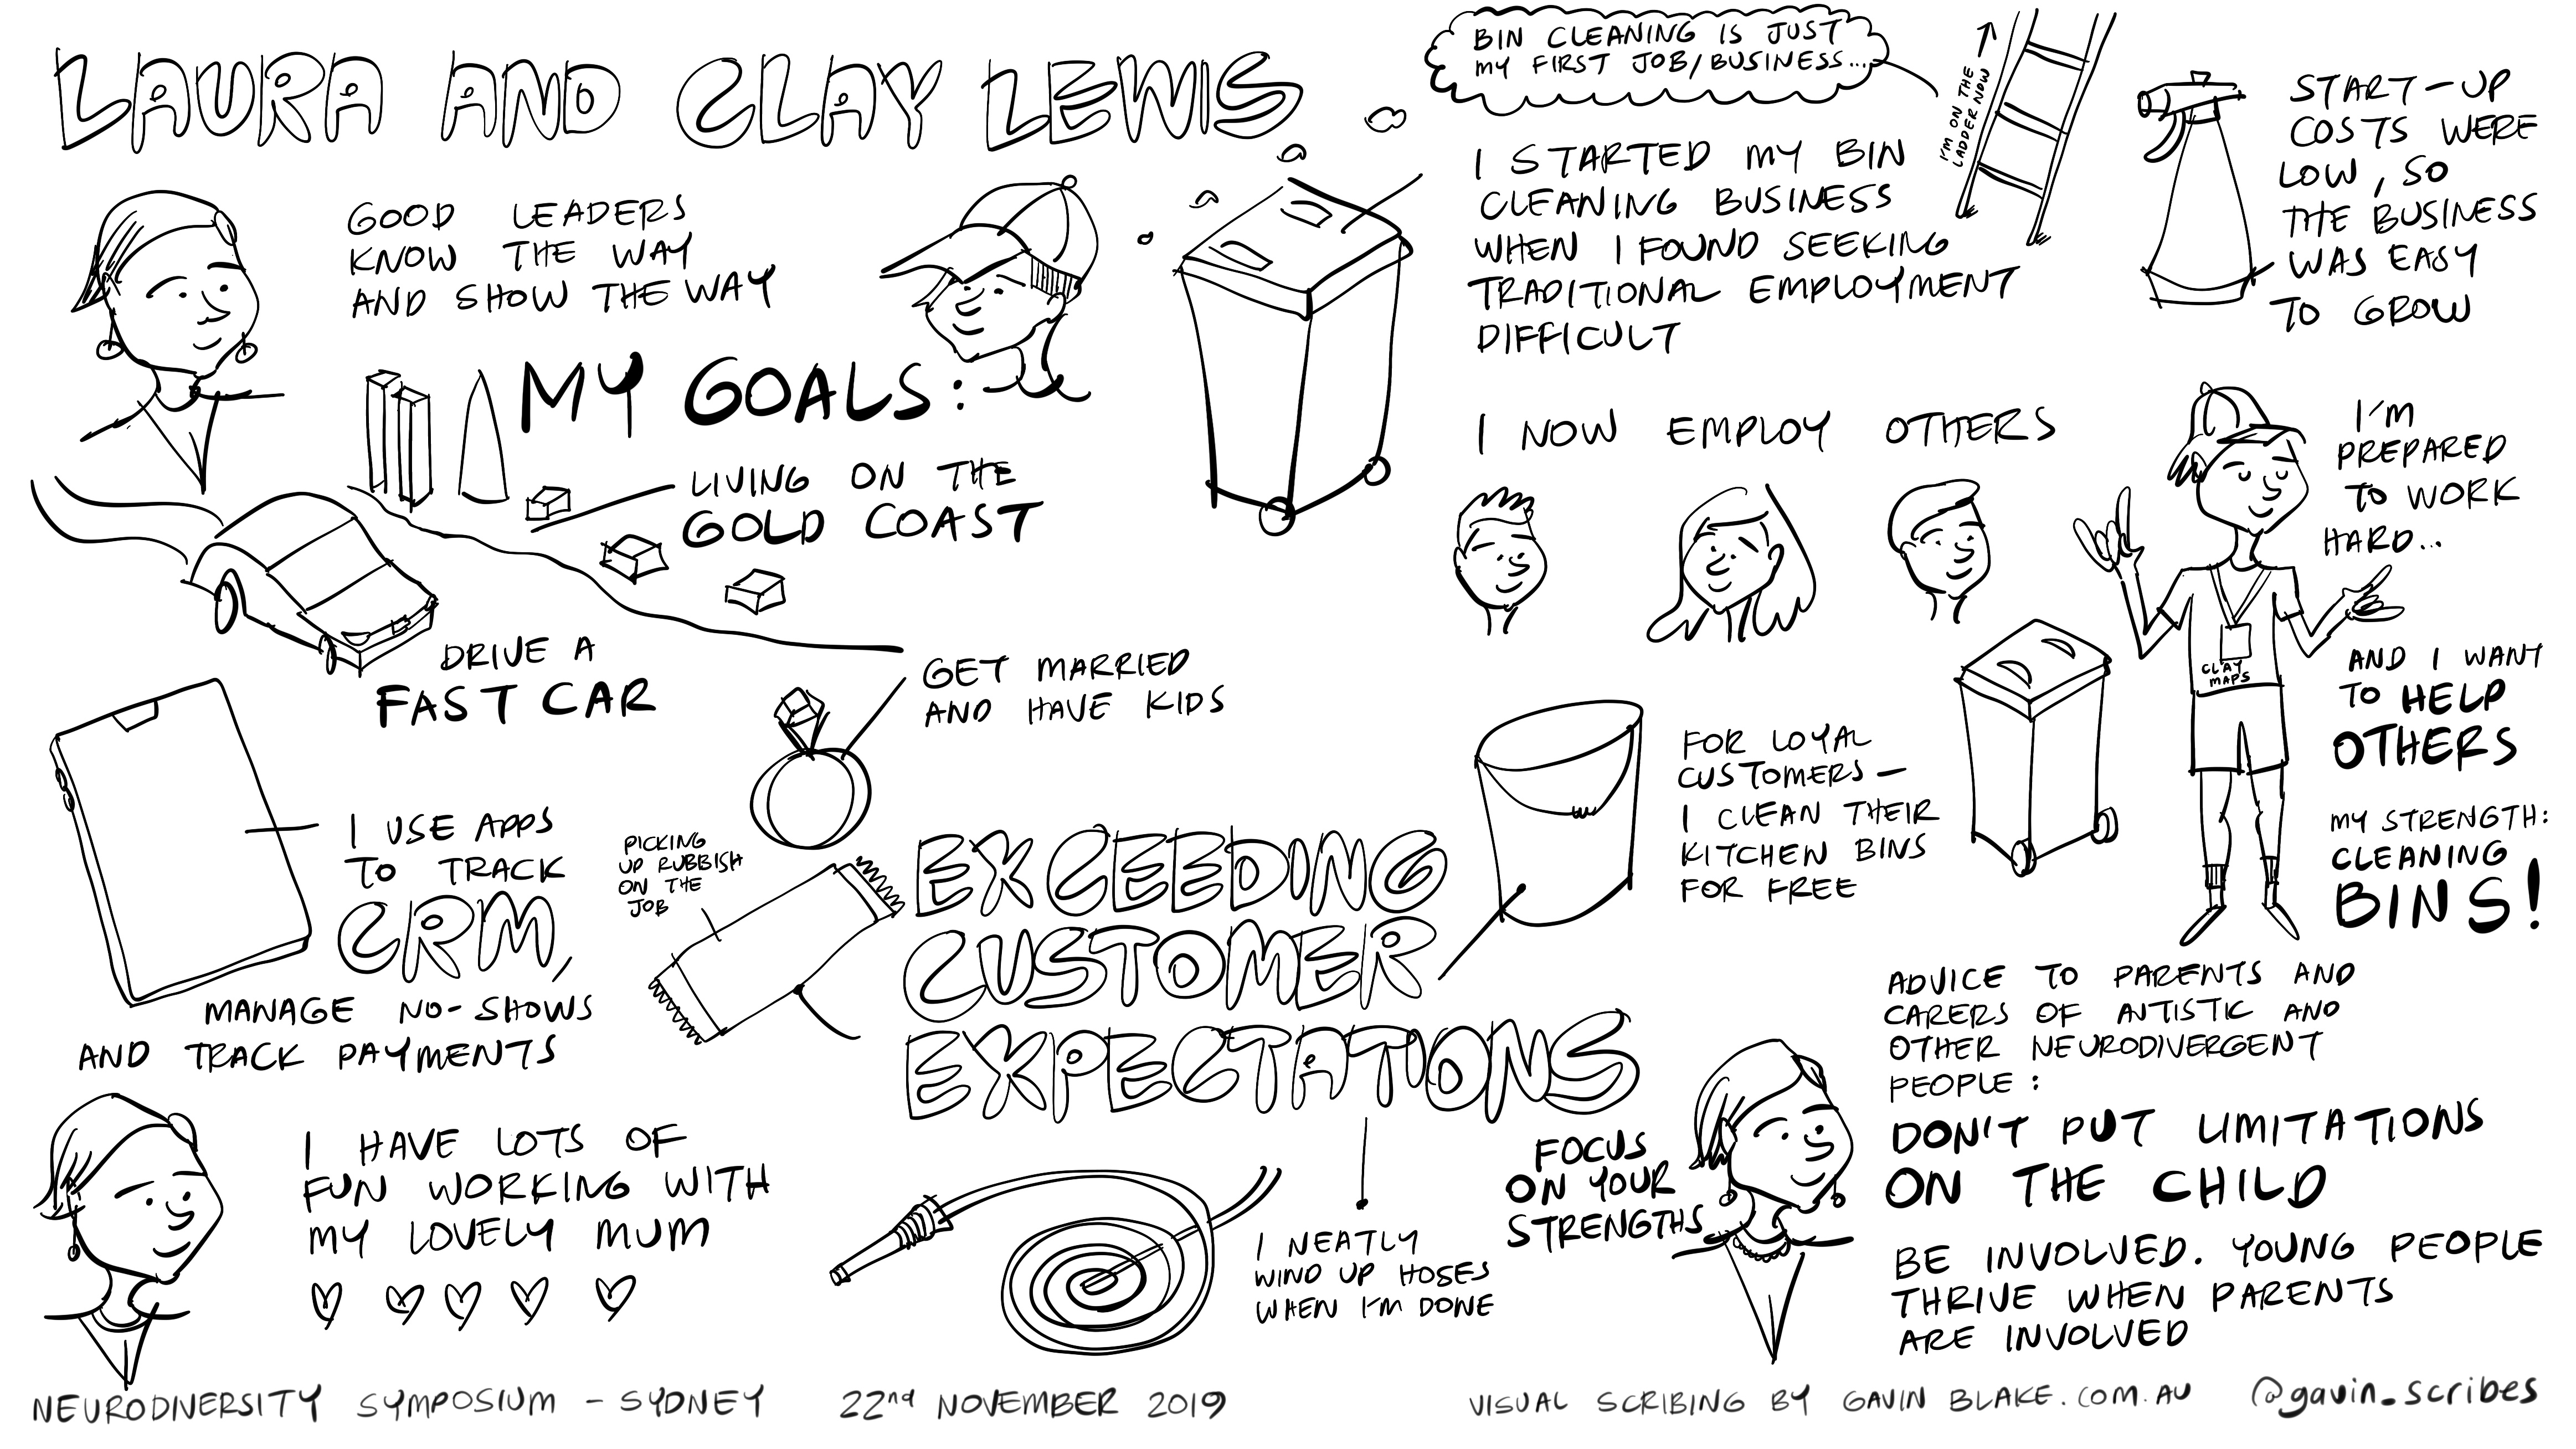 Laura and Clay sketchnote at the Sydney Neurodivesity Symposium